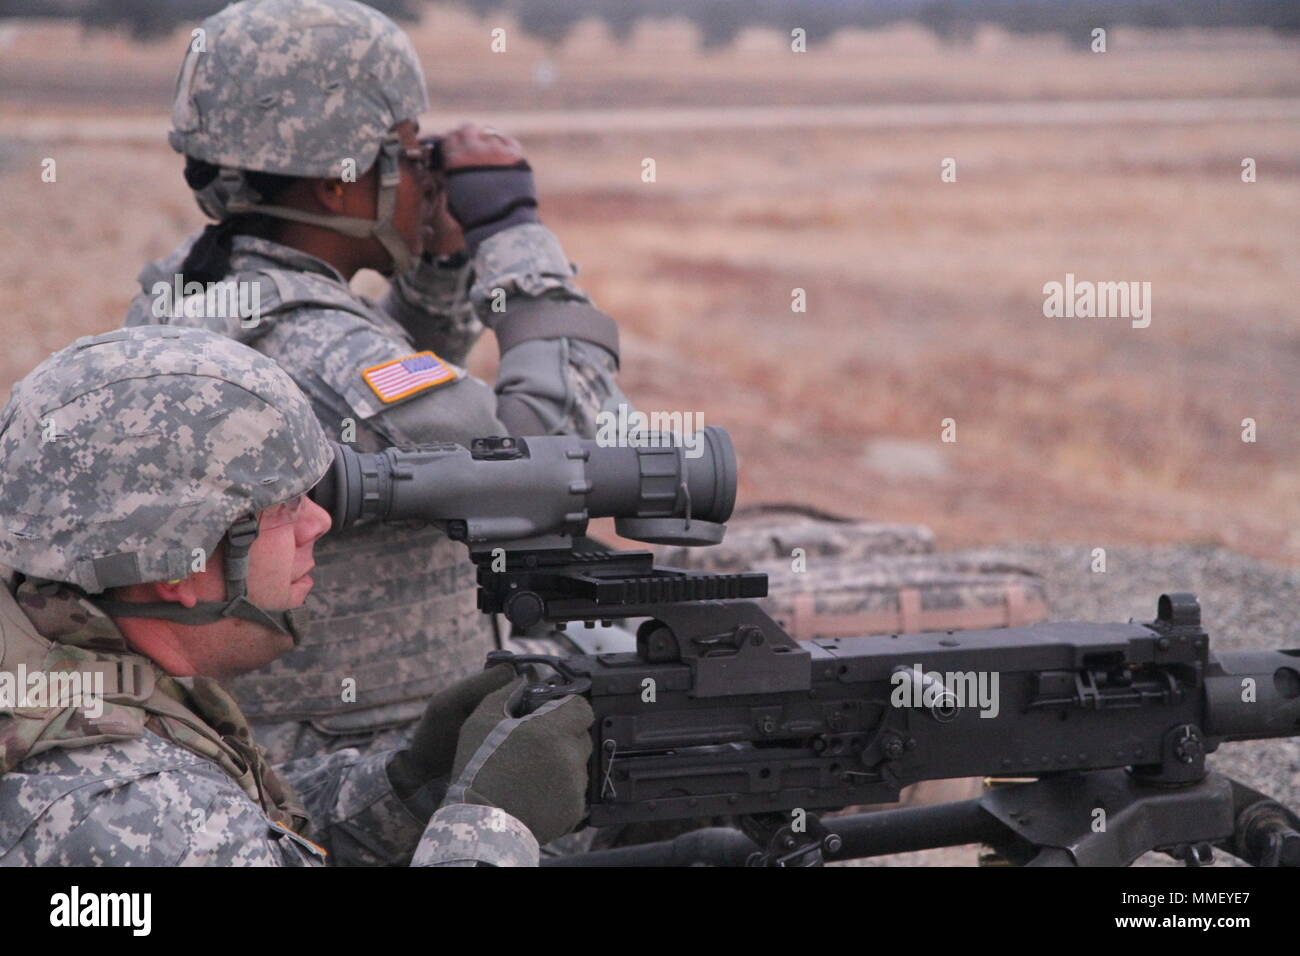 U S Army Staff Sgt Melissa High Resolution Stock Photography And Images Alamy